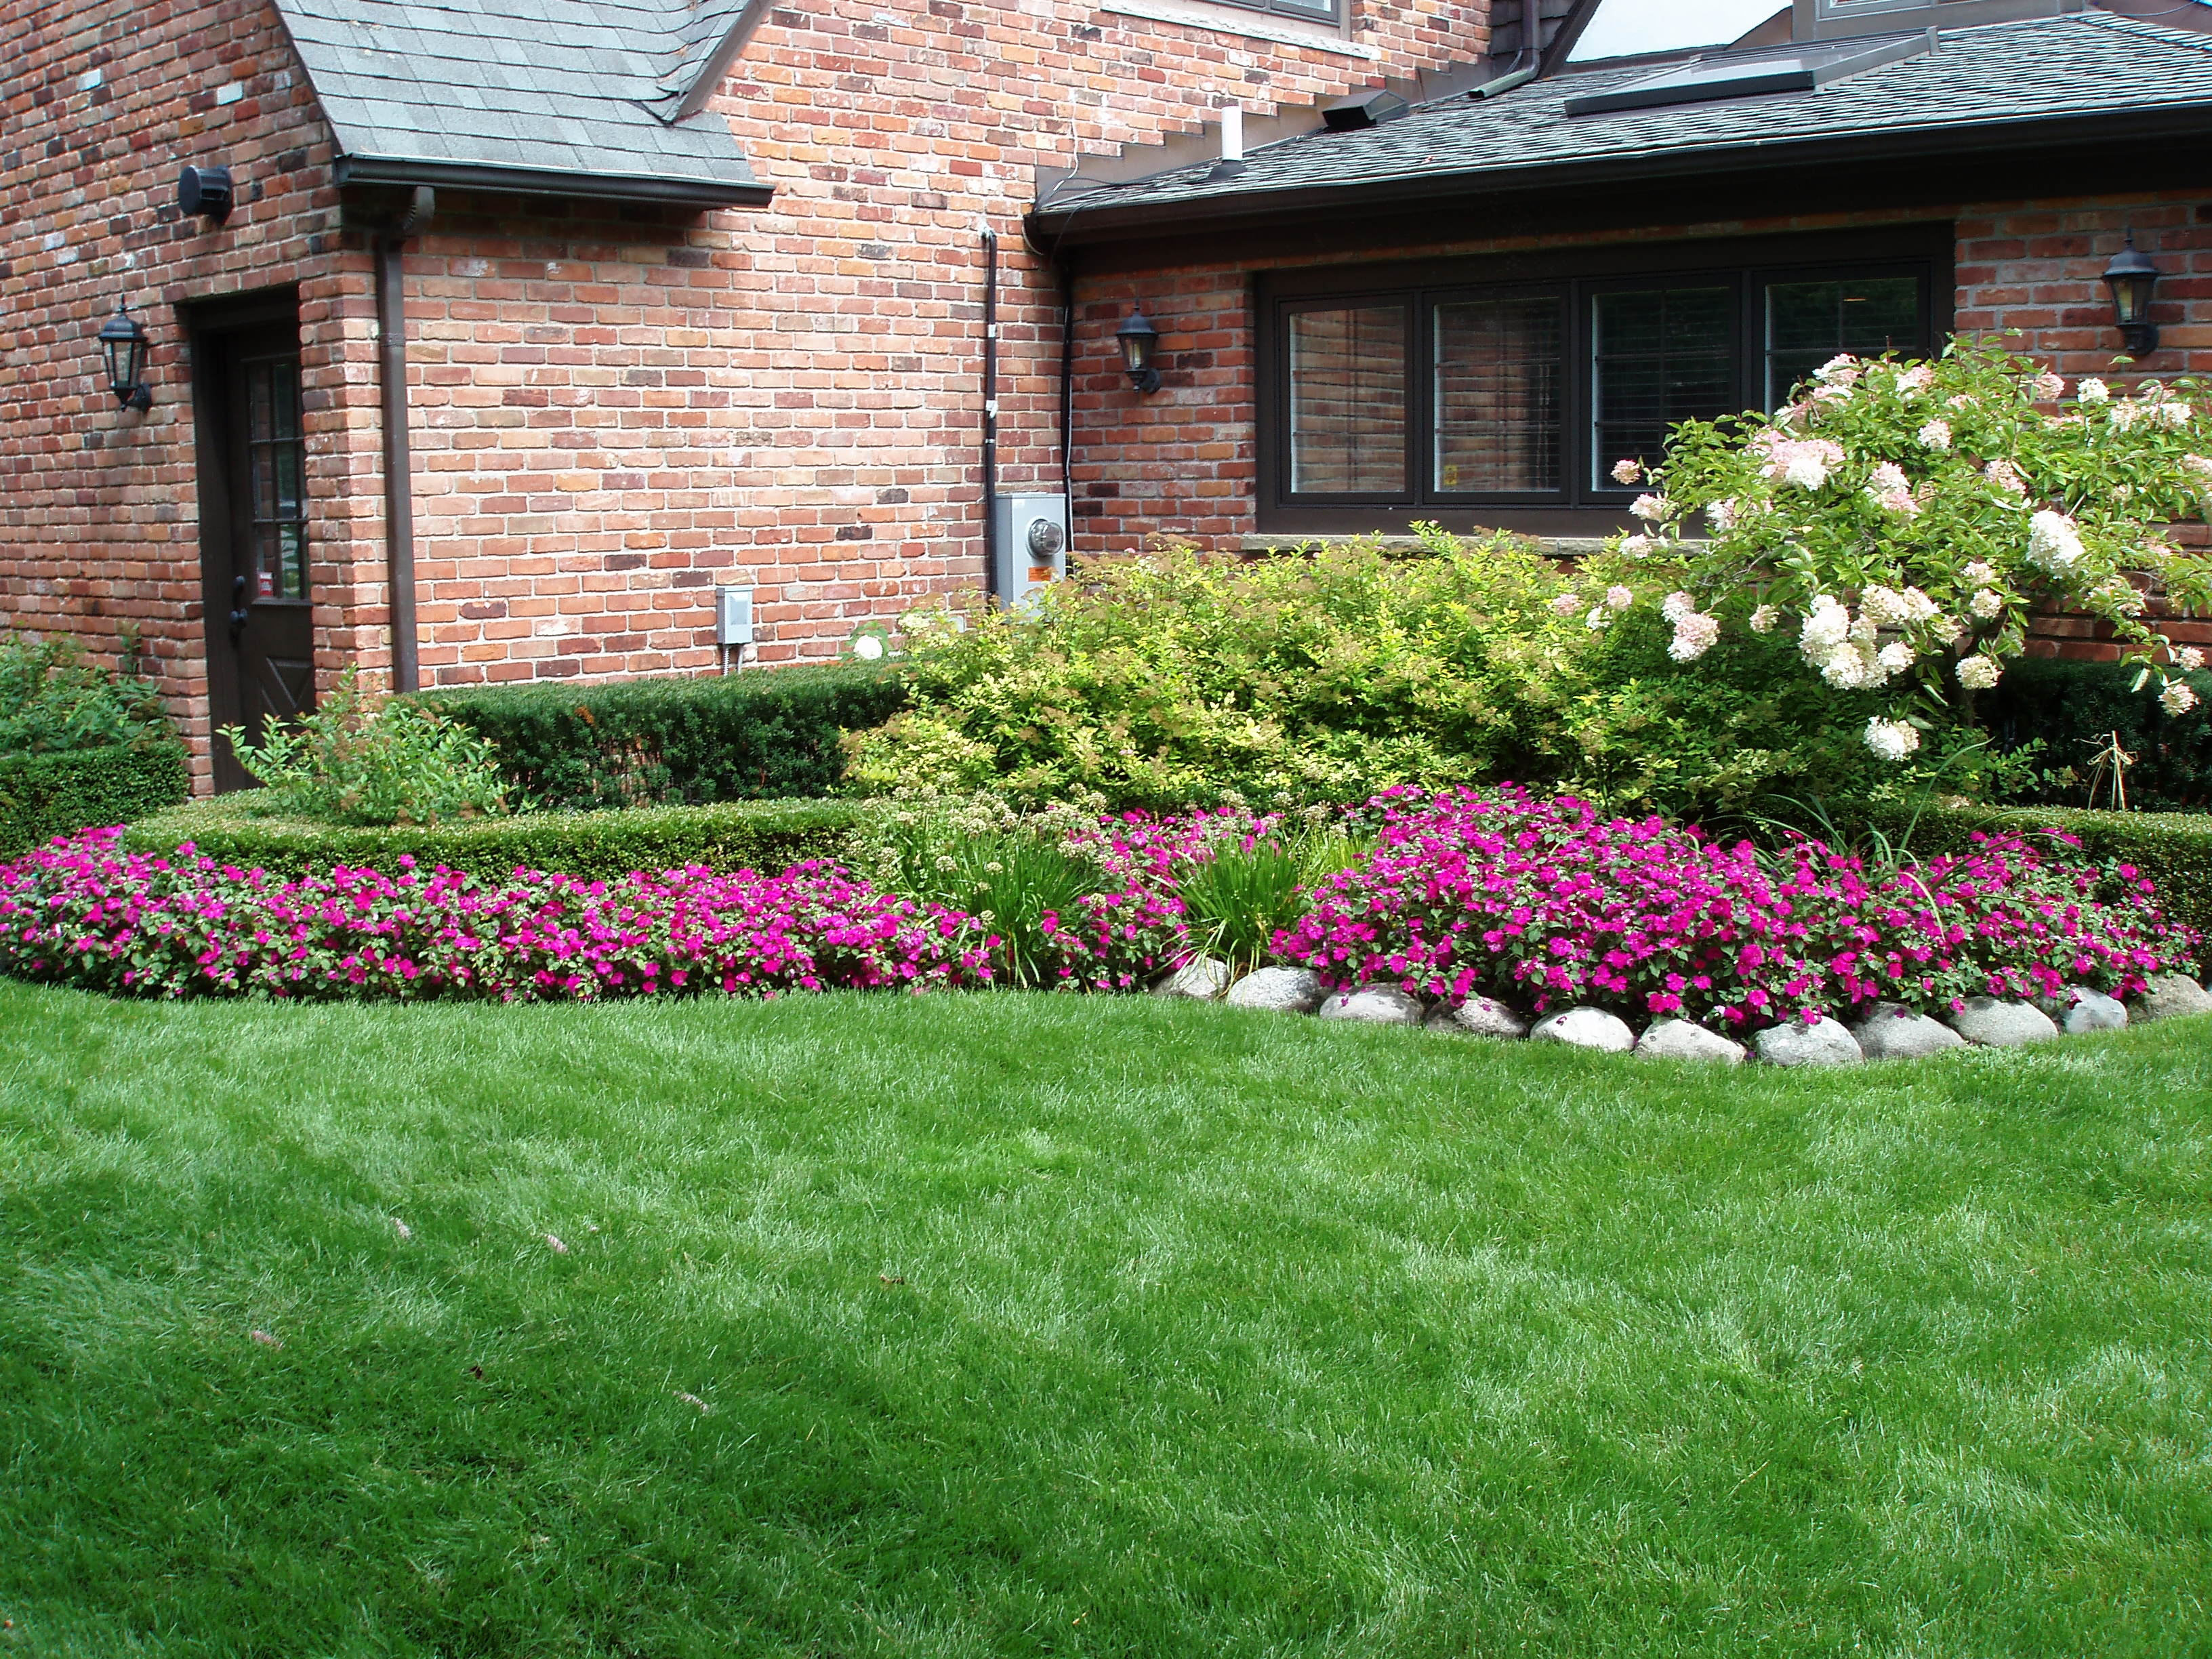 Perennials total lawn care inc full lawn maintenance for Front yard landscaping ideas